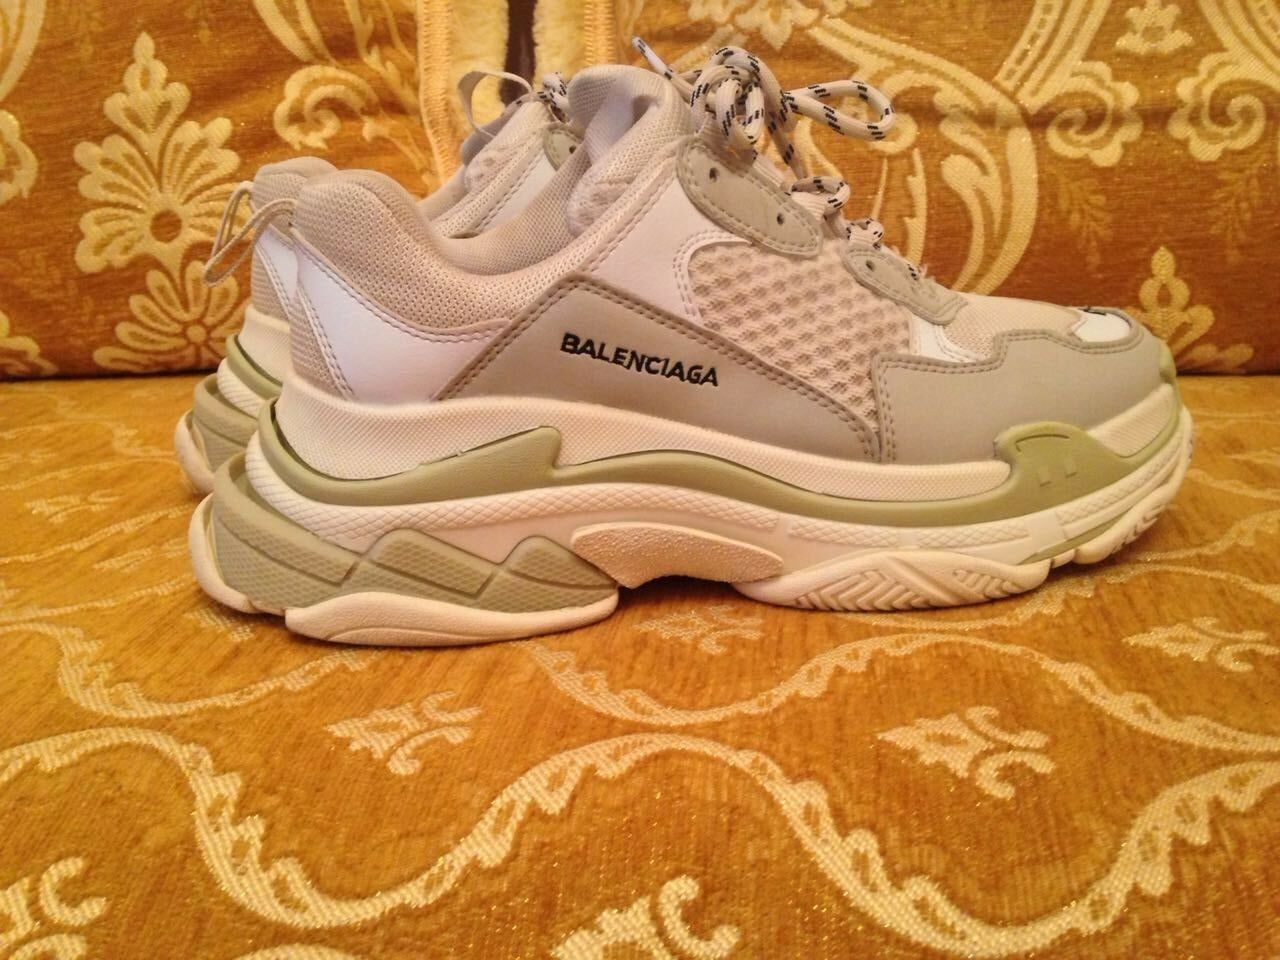 US 8 The Balenciaga triple S white RARE Edition (All sizes Available)